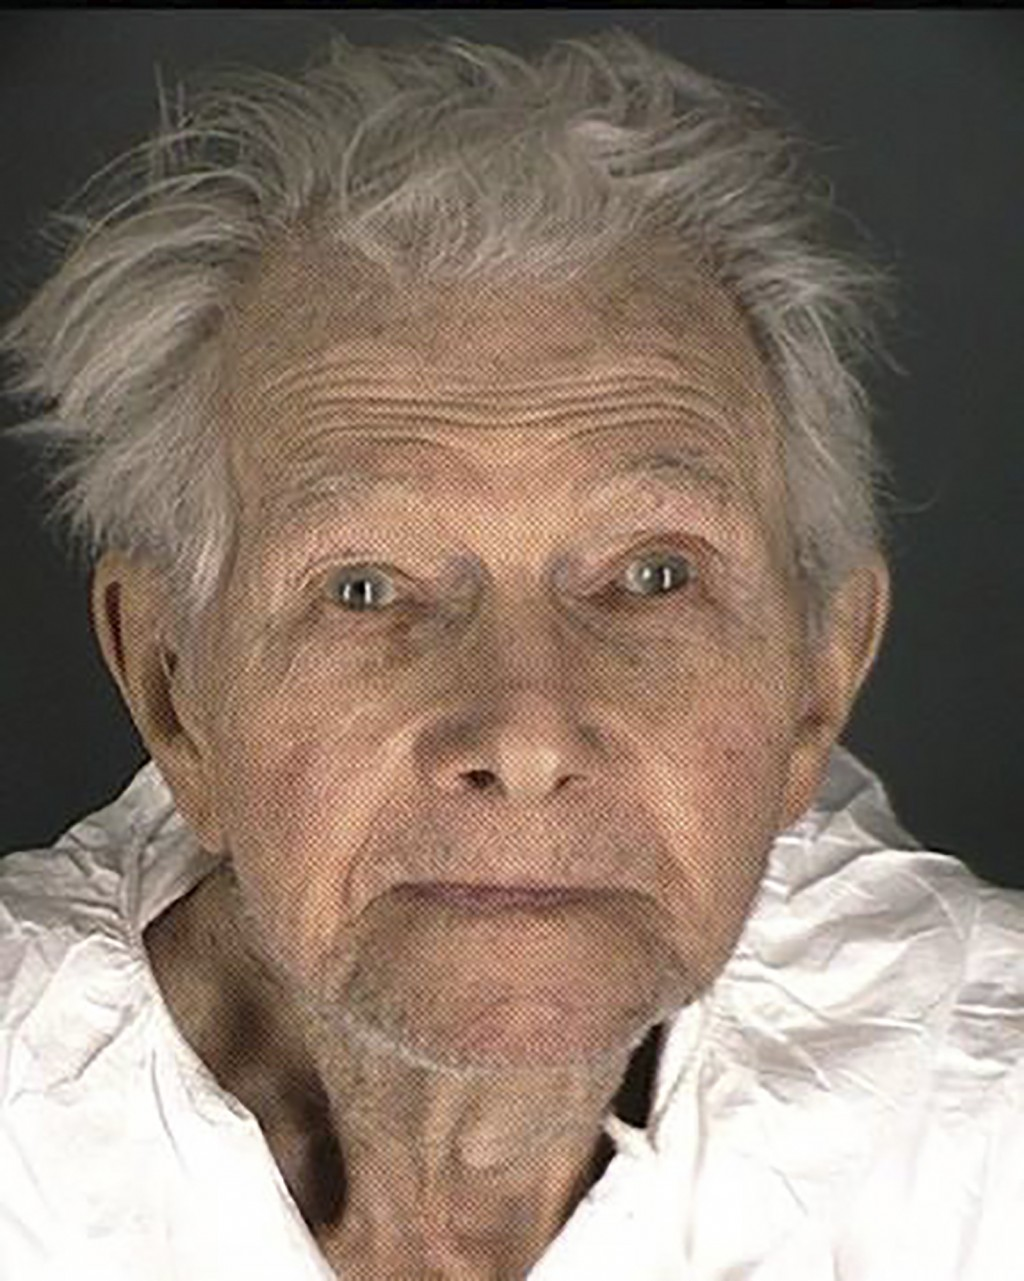 This booking provided by the Boulder County Sheriff's Office shows Okey Payne. Police say Payne, 95, and  accused of shooting and killing a maintenanc...